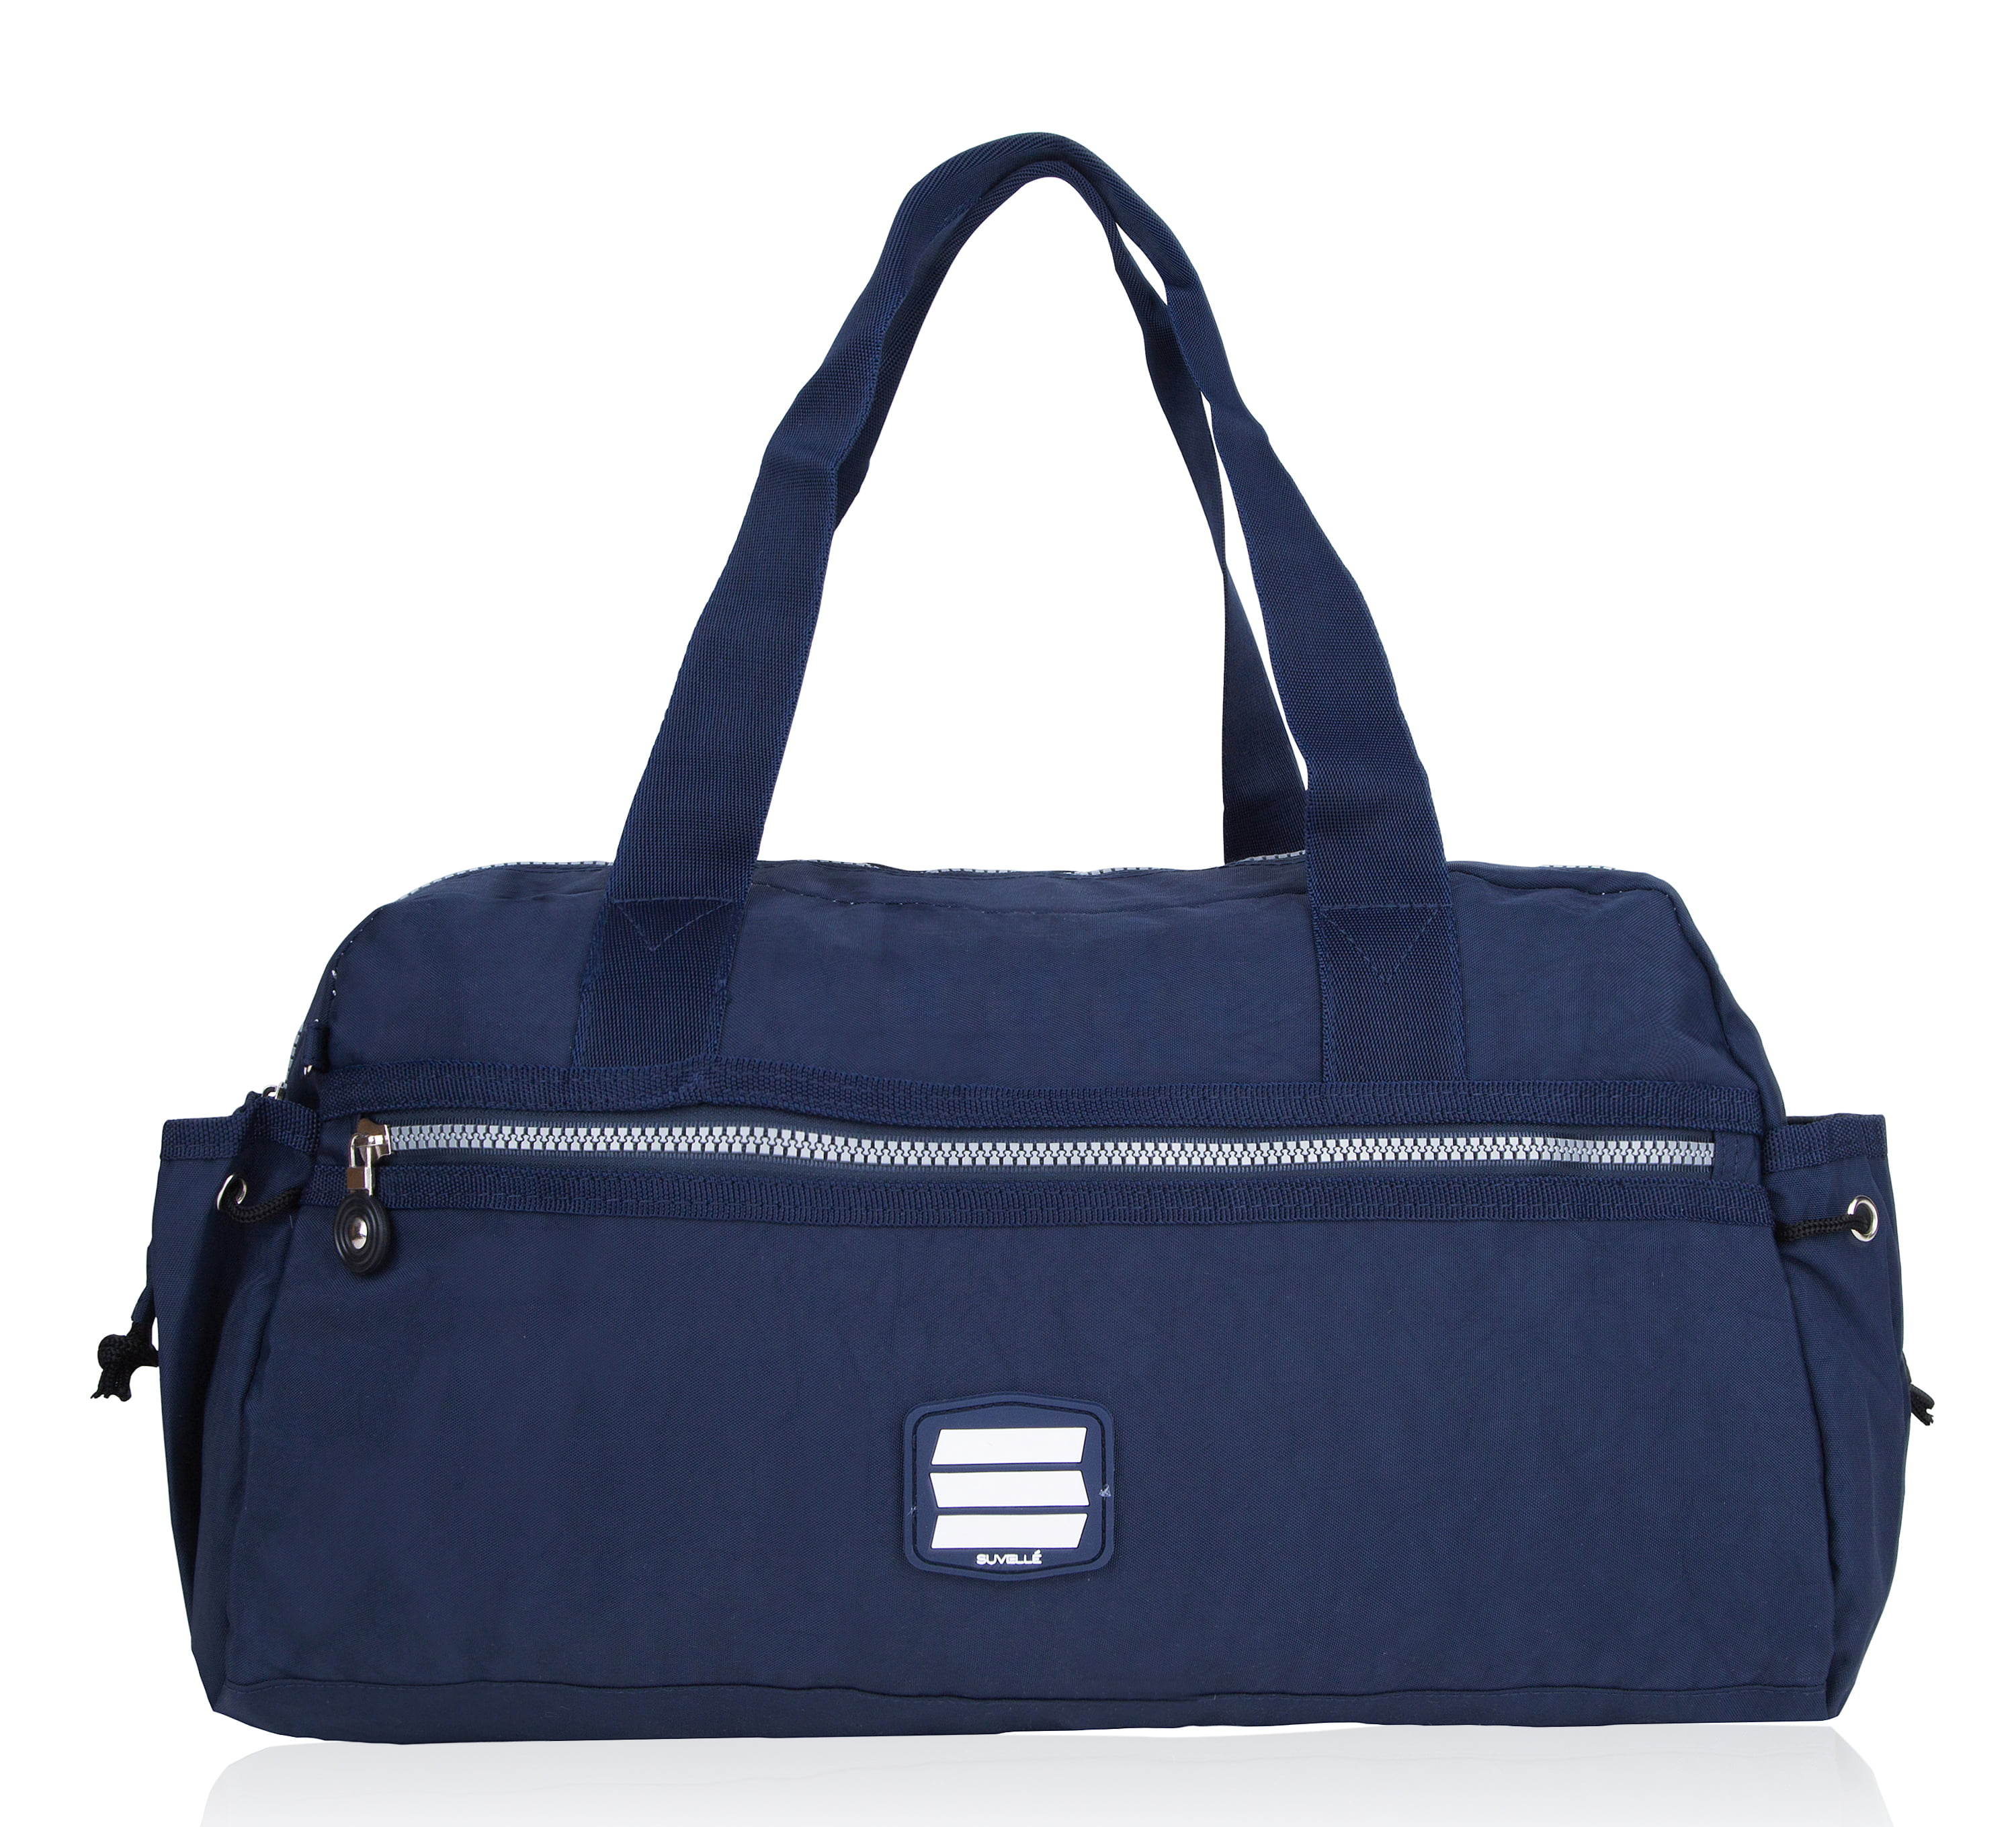 Suvelle Small Lightweight Duffle Weekend Handbag Luggage Gym Sports Travel Duffel Bag 2067 by suvelle